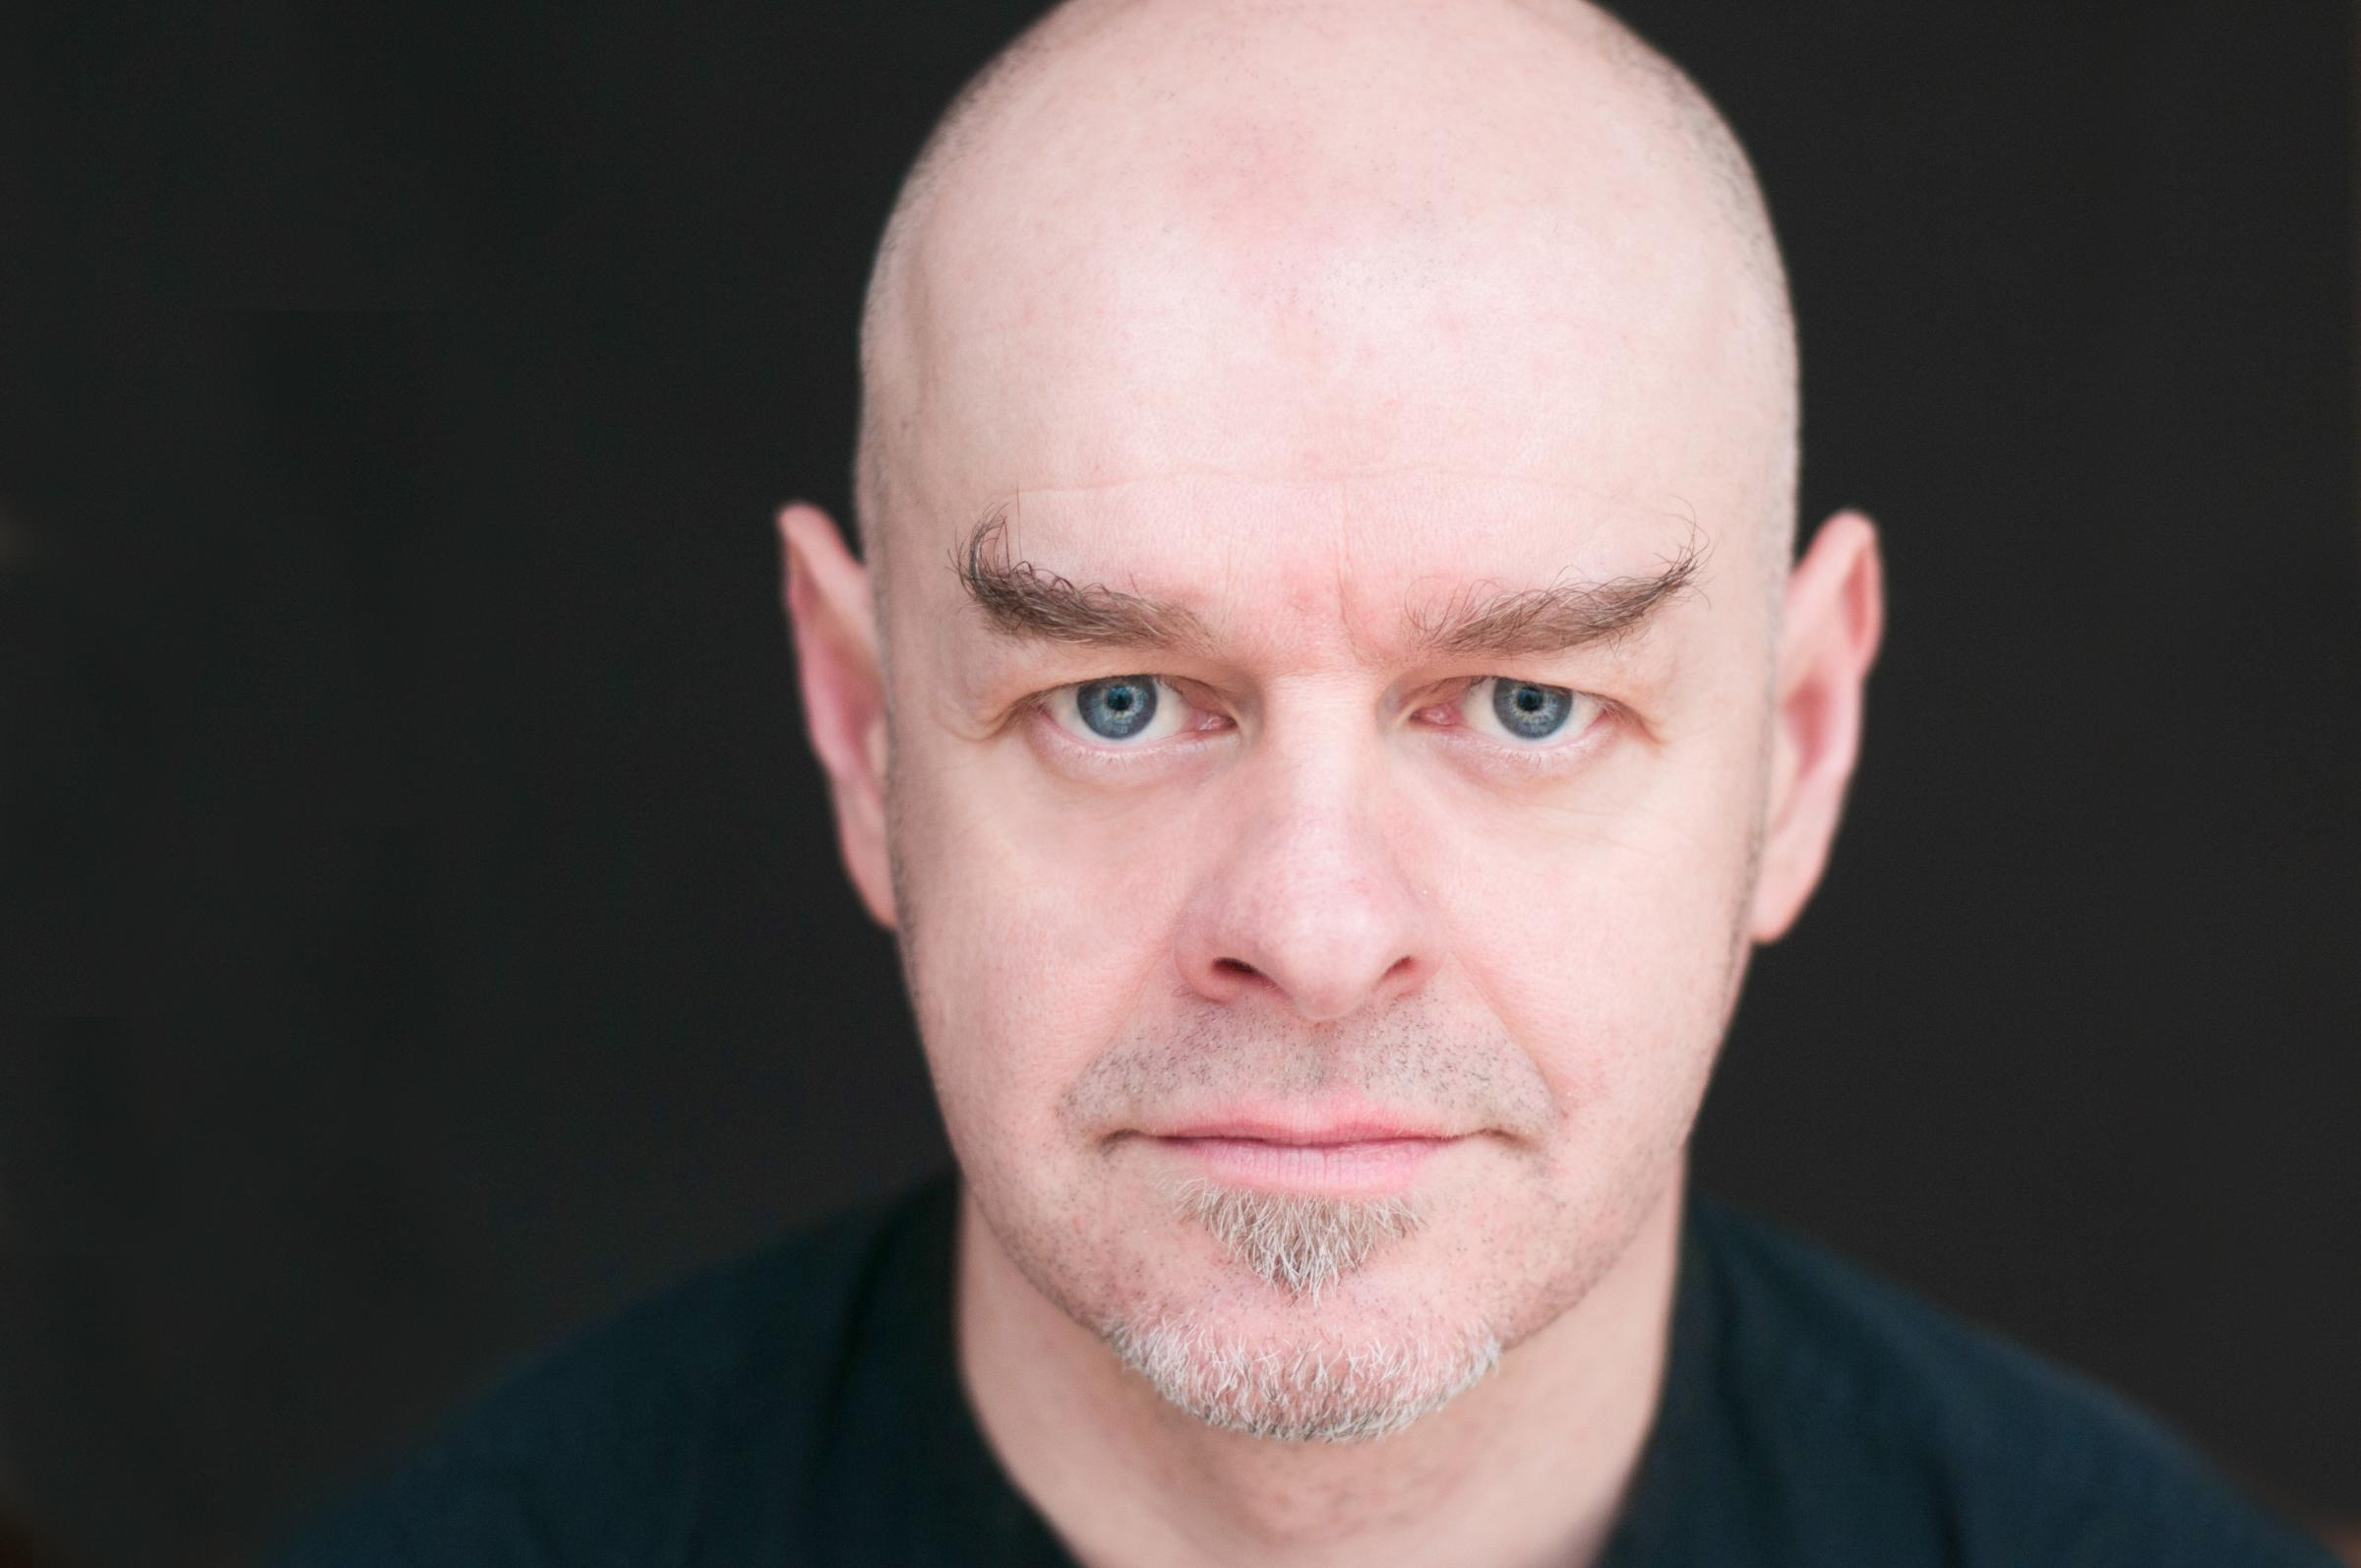 Coastal Comedy presents the incredible Paul Thorne